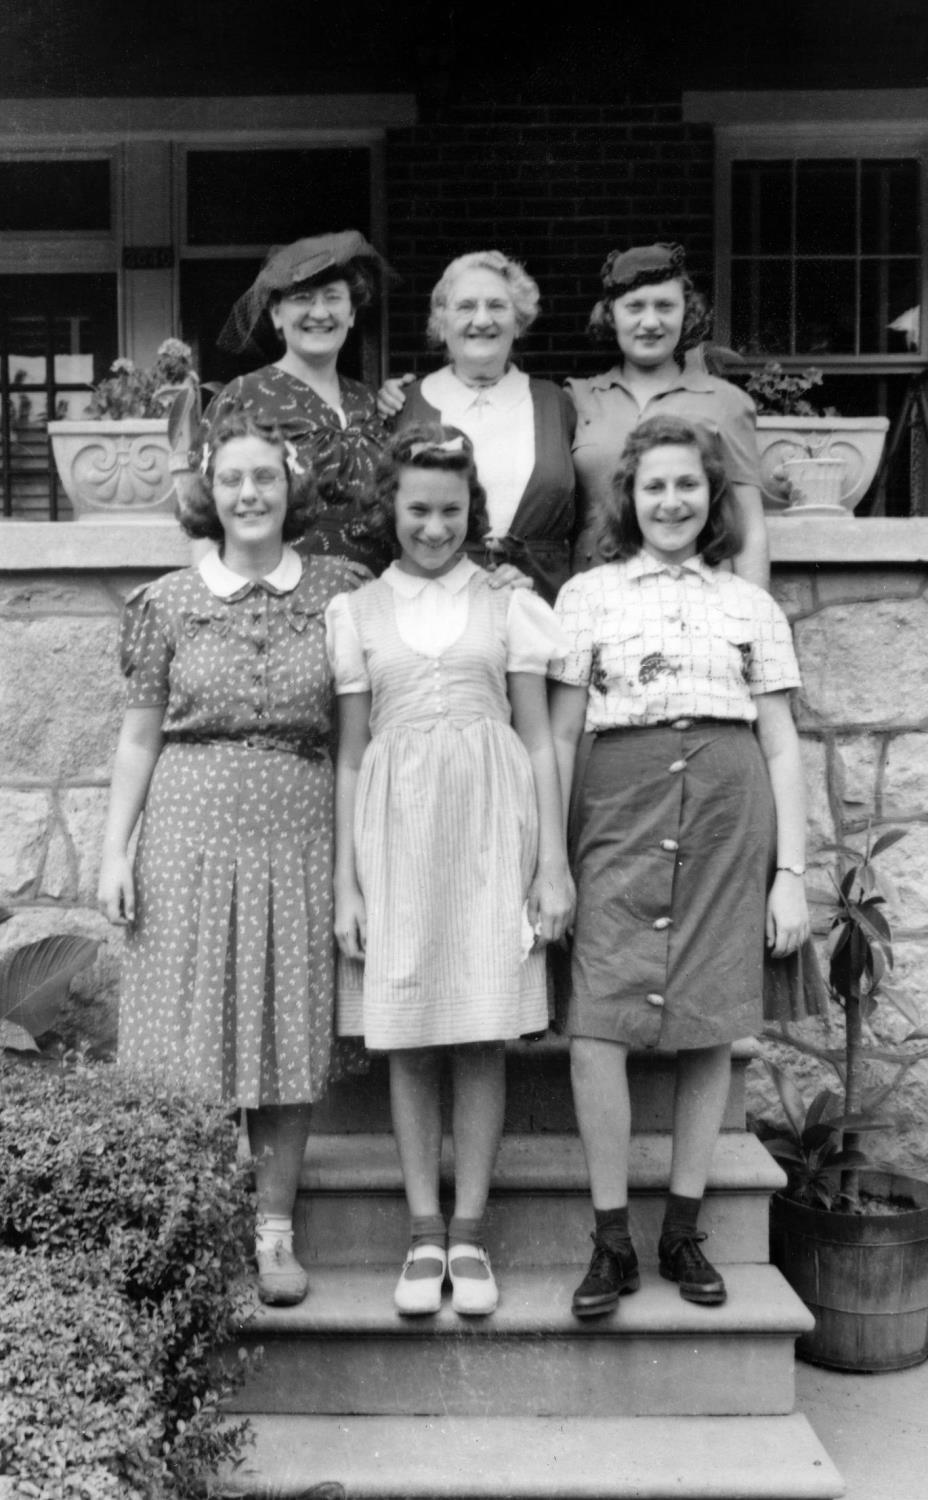 Adalman Family before WWII in Baltimore: Back: Rose Finestone, Dora Adalman, Hannah Shapiro.  Front: Lillian Finestone, Lillian Shapiro, Anne Adalman